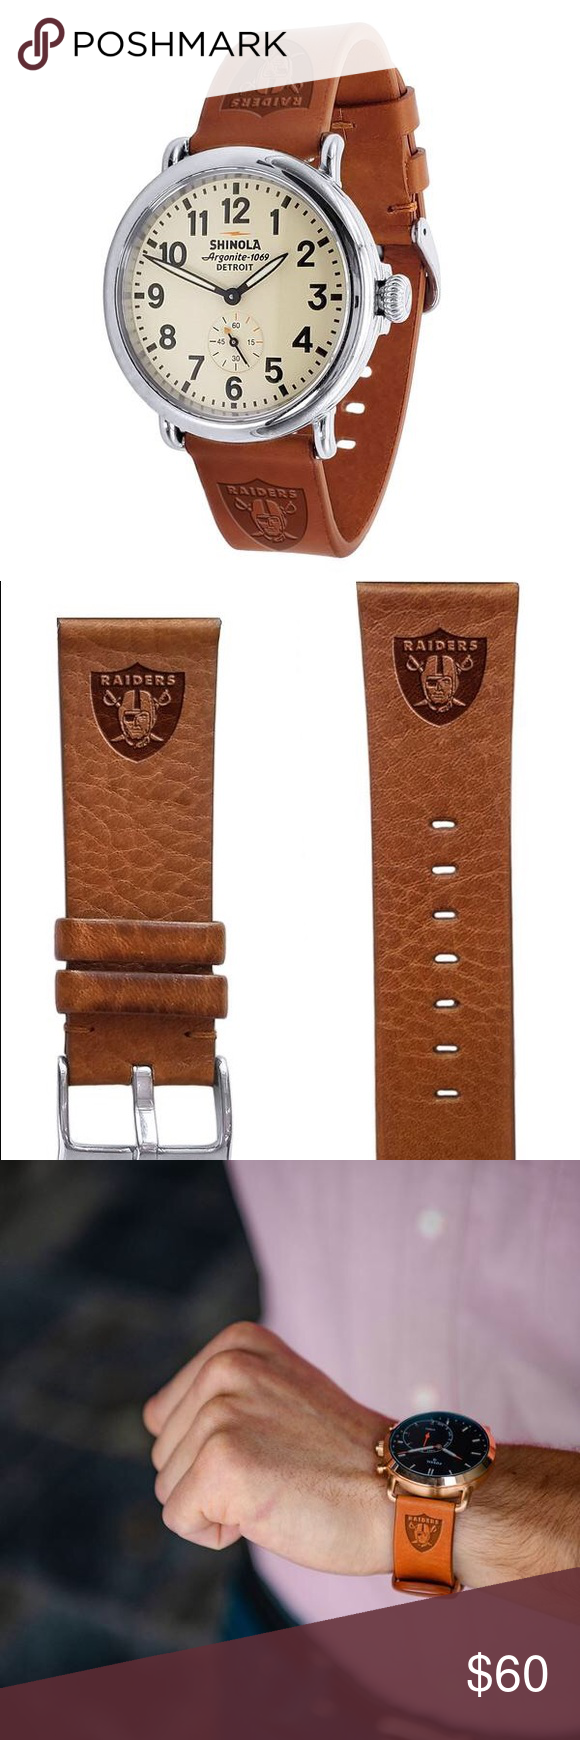 Oakland Raiders Leather Quick Change Watchband This